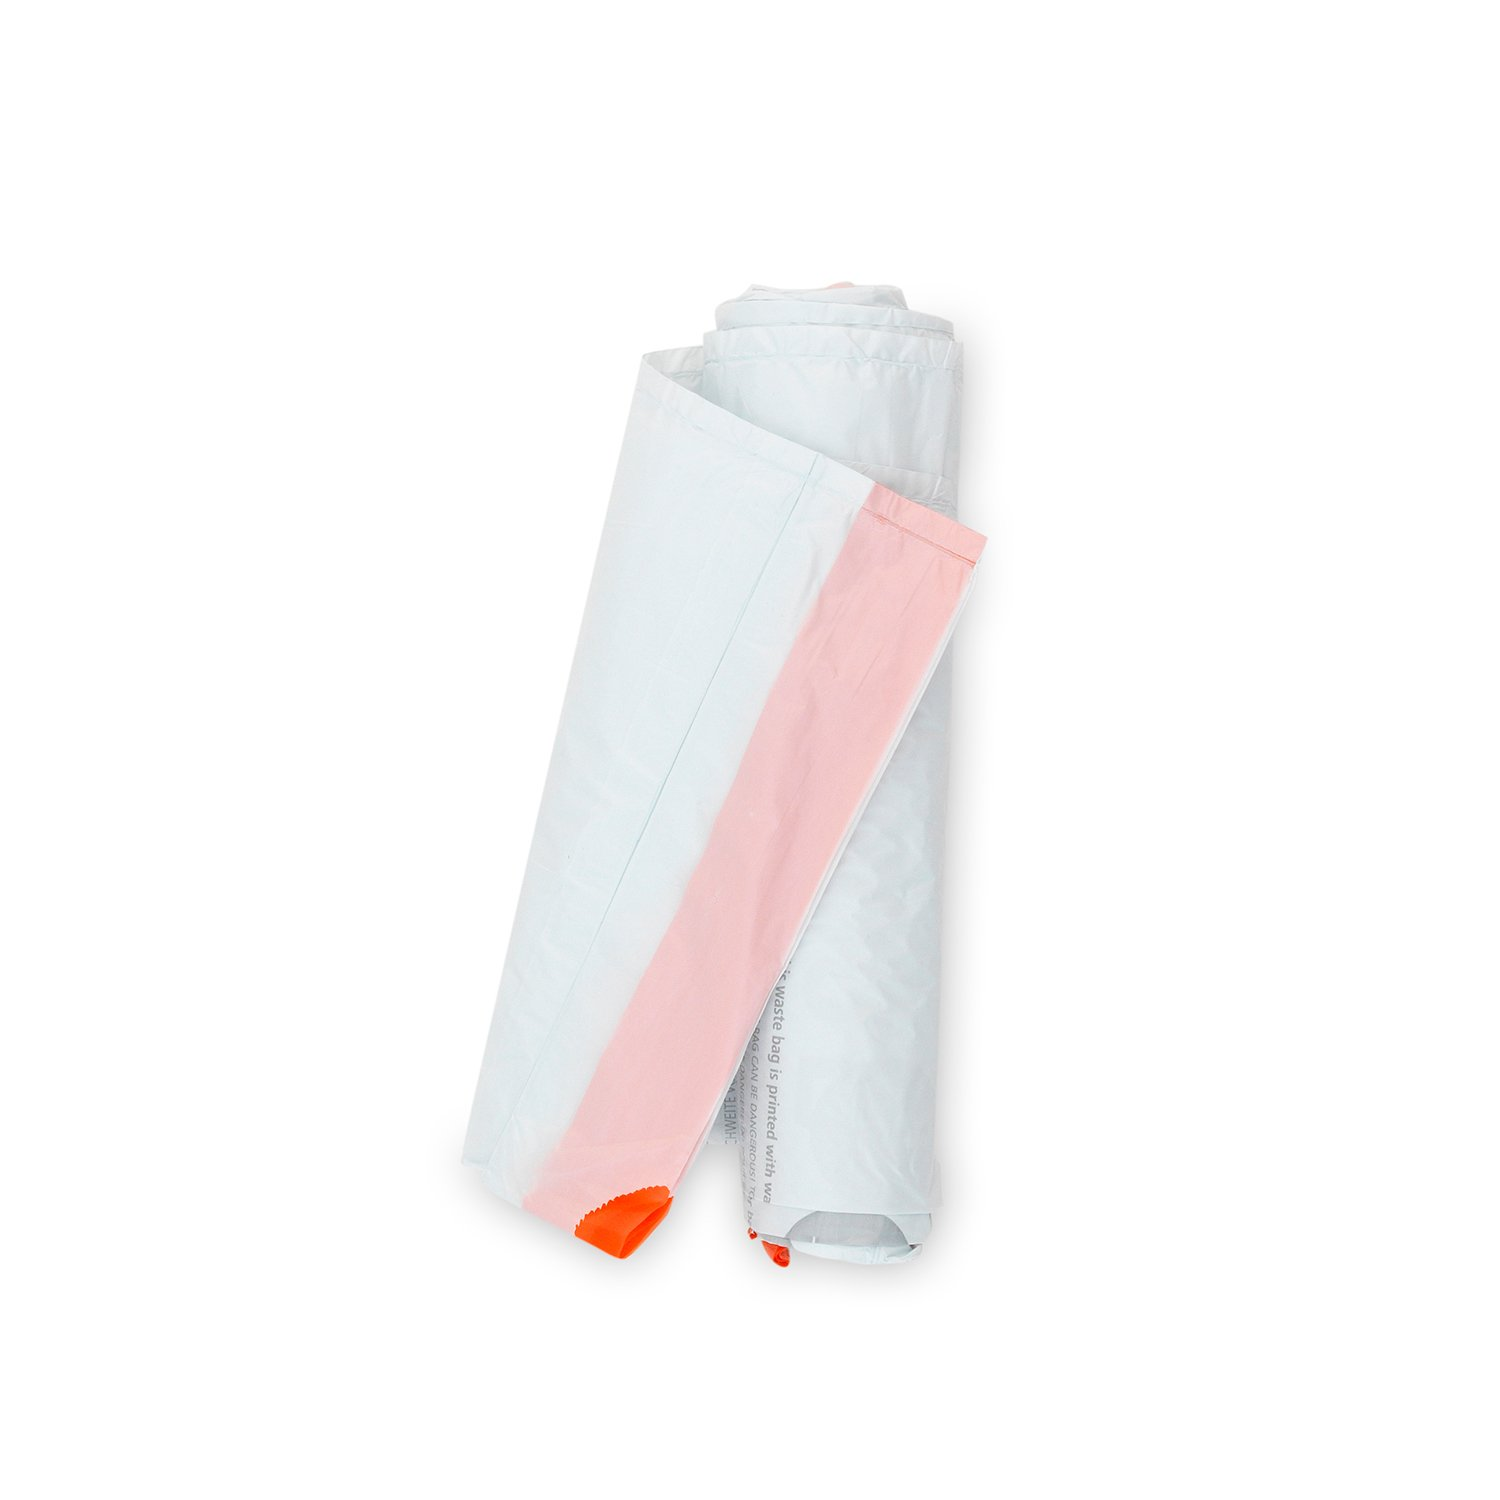 Brabantia Perfect Bin Liners (B) 20 Pack